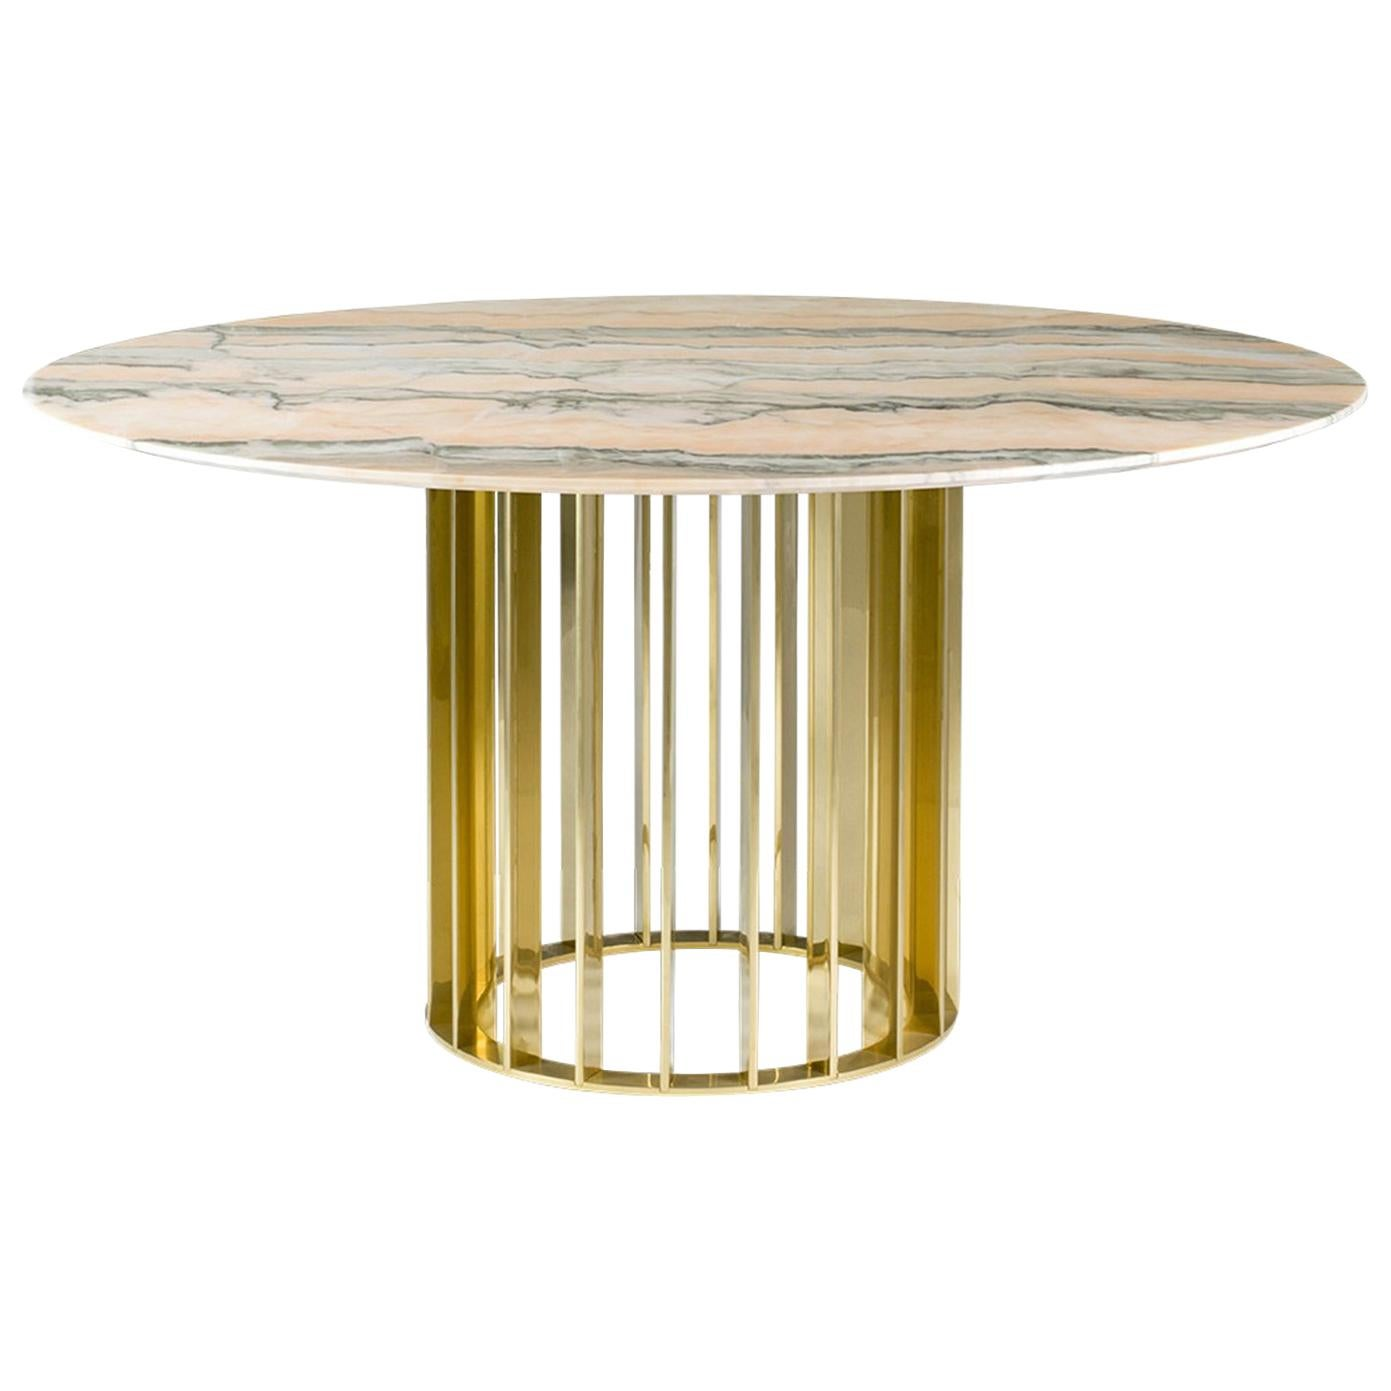 Beau Orbiter, Contemporary Round Dining Table With Gold Base And Marble Top